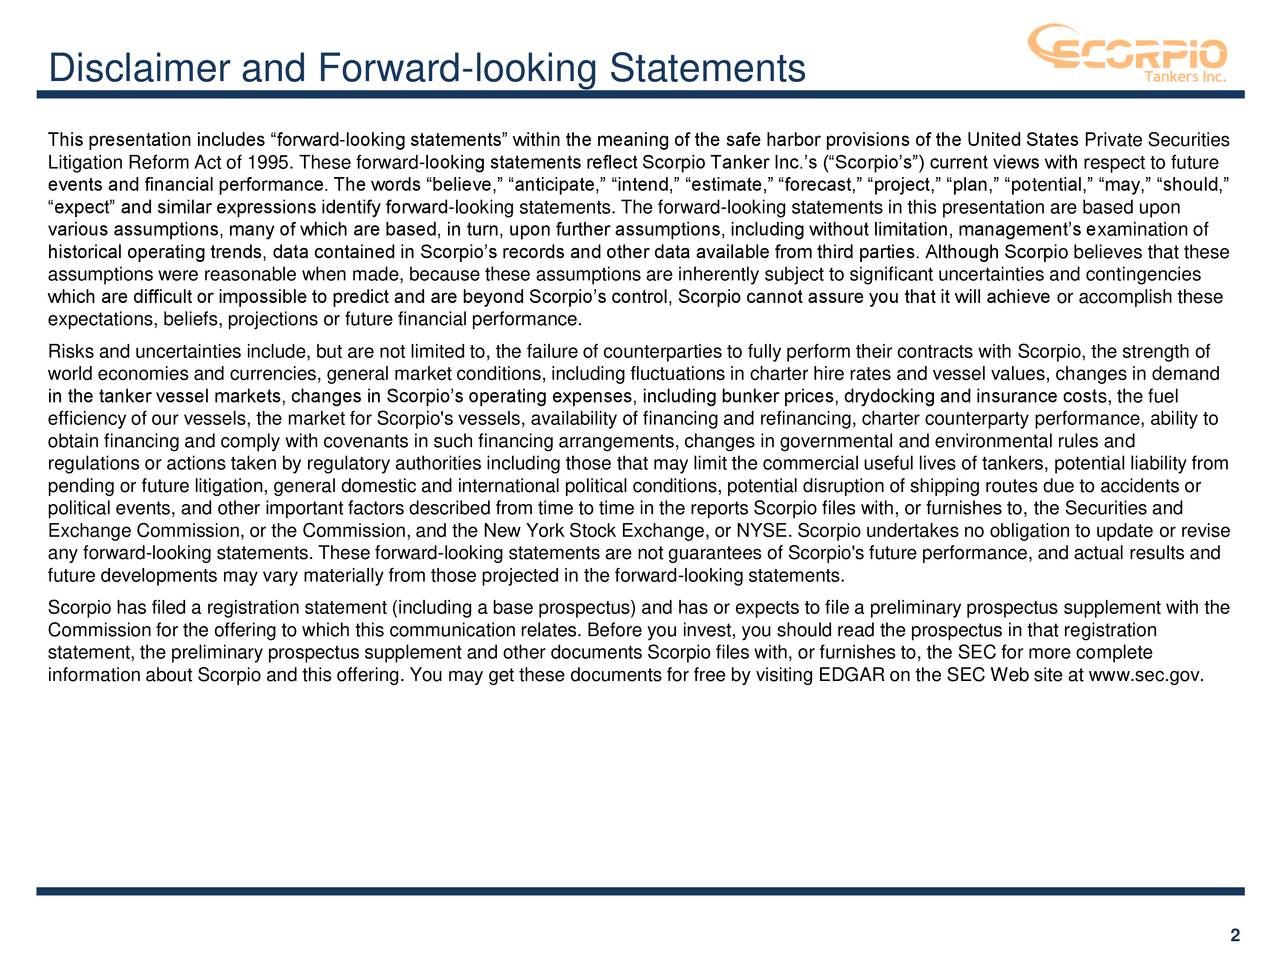 """This presentation includes """"forward-looking statements"""" within the meaning of the safe harbor provisions of the United States Private Securities Litigation Reform Act of 1995. These forward-looking statements reflect Scorpio Tanker Inc.'s (""""Scorpio's"""") current views with respect to future events and financial performance. The words """"believe,"""" """"anticipate,"""" """"intend,"""" """"estimate,"""" """"forecast,"""" """"project,"""" """"plan,"""" """"potential,"""" """"may,"""" """"should,"""" """"expect"""" and similar expressions identify forward-looking statements. The forward-looking statements in this presentation are based upon various assumptions, many of which are based, in turn, upon further assumptions, including without limitation, management's examination of historical operating trends, data contained in Scorpio's records and other data available from third parties. Although Scorpio believes that these assumptions were reasonable when made, because these assumptions are inherently subject to significant uncertainties and contingencies which are difficult or impossible to predict and are beyond Scorpio's control, Scorpio cannot assure you that it will achieve or accomplish these expectations, beliefs, projections or future financial performance. Risks and uncertainties include, but are not limited to, the failure of counterparties to fully perform their contracts with Scorpio, the strength of world economies and currencies, general market conditions, including fluctuations in charter hire rates and vessel values, changes in demand in the tanker vessel markets, changes in Scorpio's operating expenses, including bunker prices, drydocking and insurance costs, the fuel efficiency of our vessels, the market for Scorpio's vessels, availability of financing and refinancing, charter counterparty performance, ability to obtain financing and comply with covenants in such financing arrangements, changes in governmental and environmental rules and regulations or actions taken by regulatory authorities including those that may li"""